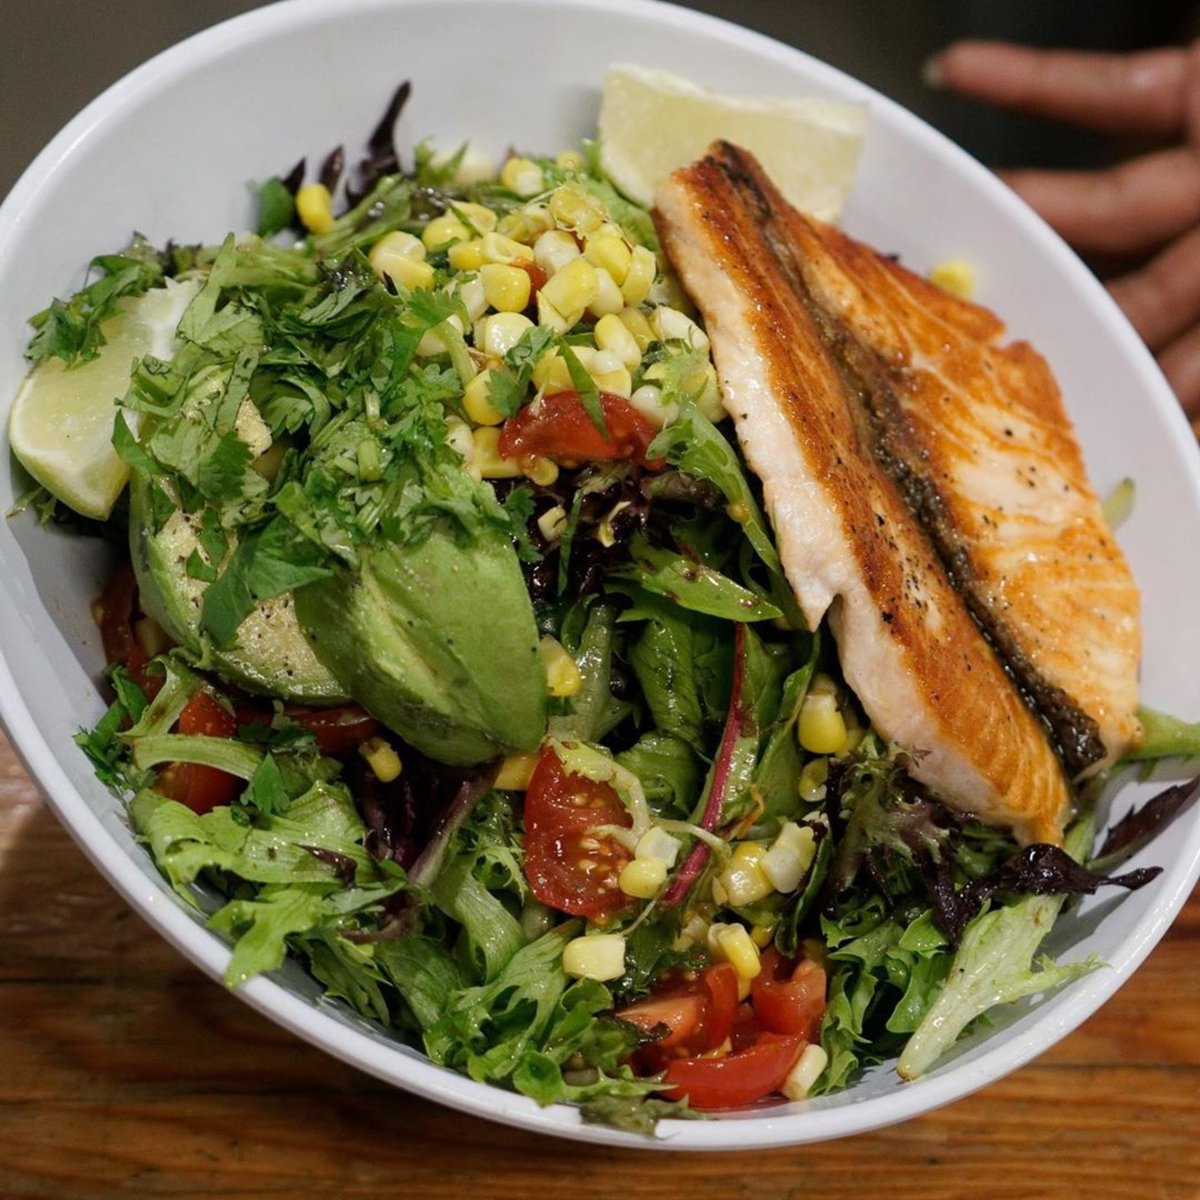 Avocado salad with salmon is a #fanfavorite at @EatFishnet. The colorful veggies and fresh salmon pair perfectly for a healthy and delicious meal that leaves you satisfied every time. Try it for yourself through curbside pickup today!<br>http://pic.twitter.com/ELj8MdcL0r